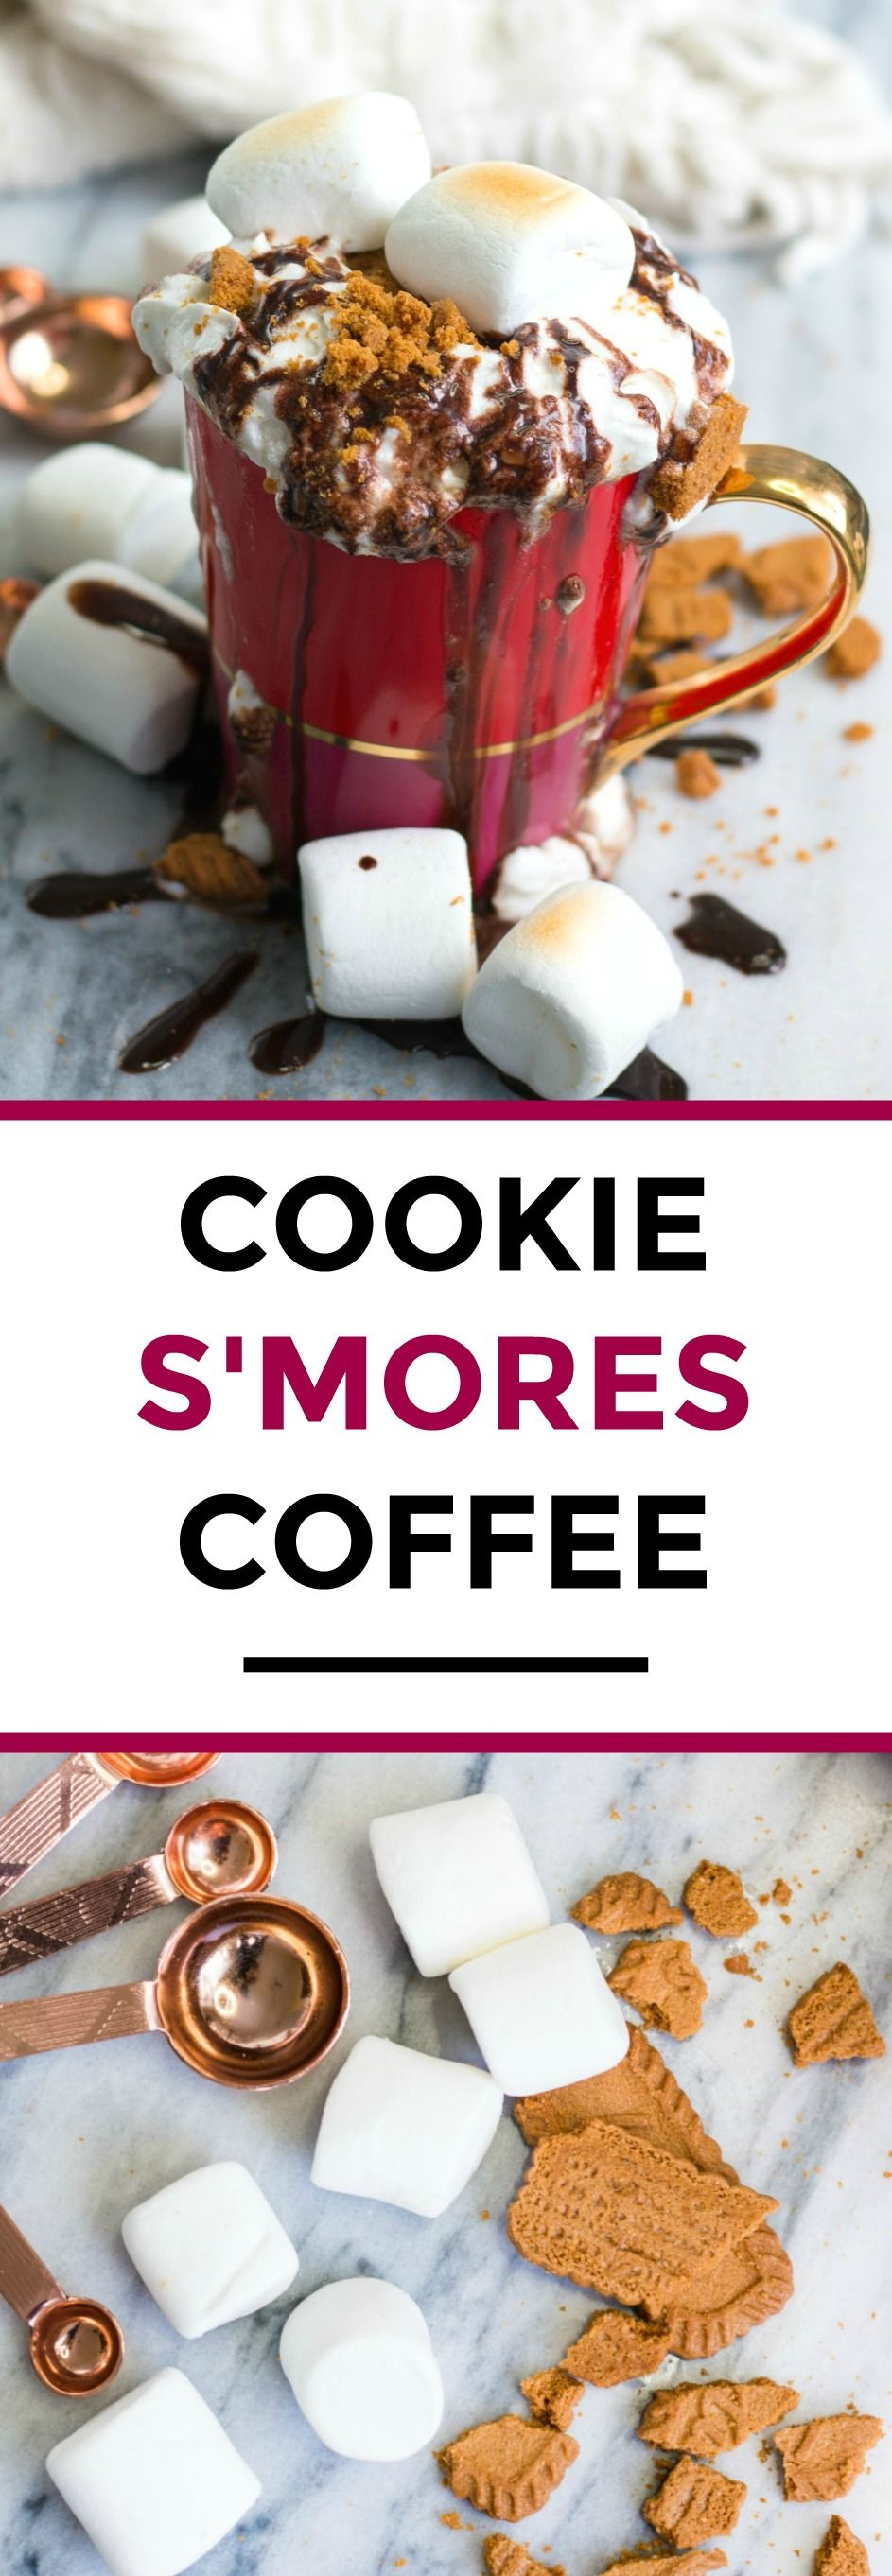 Cookies S'mores Coffee Recipe A sweet coffee drink made